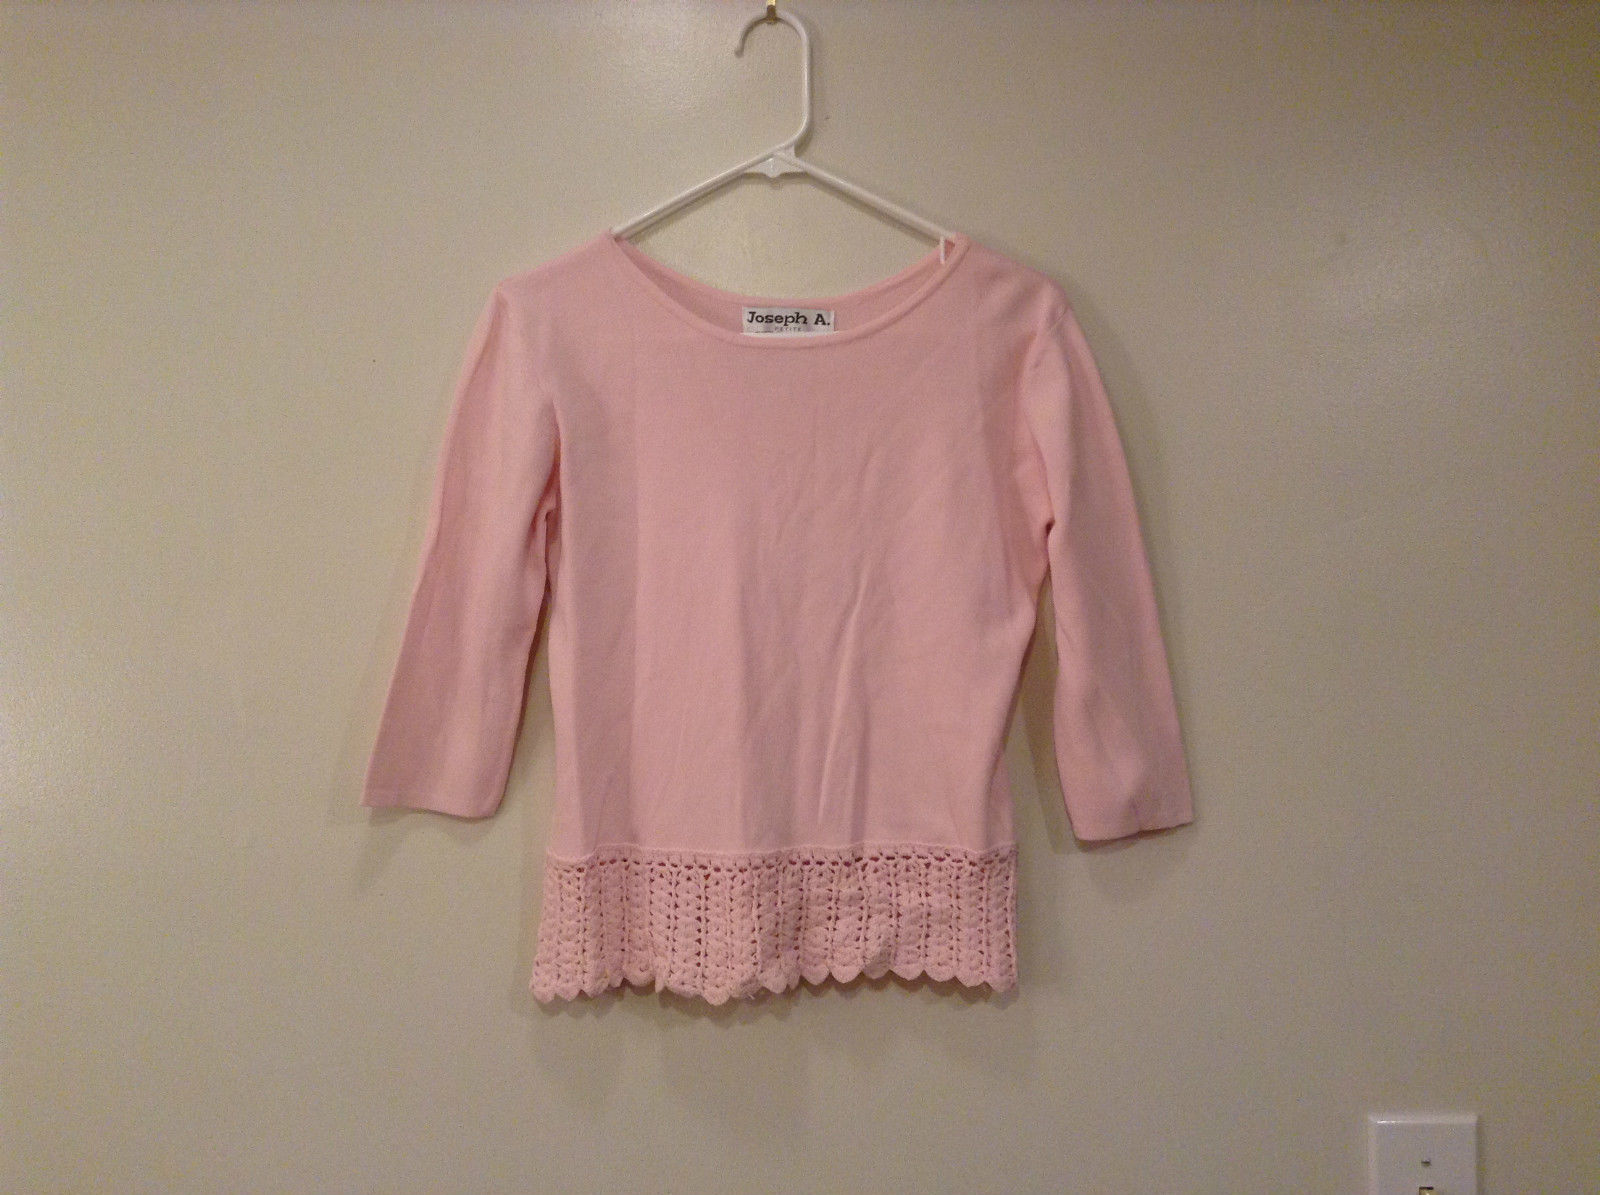 Baby Pink Joseph A Petite Top lace Decoration on Bottom Scoop Neck Size Large